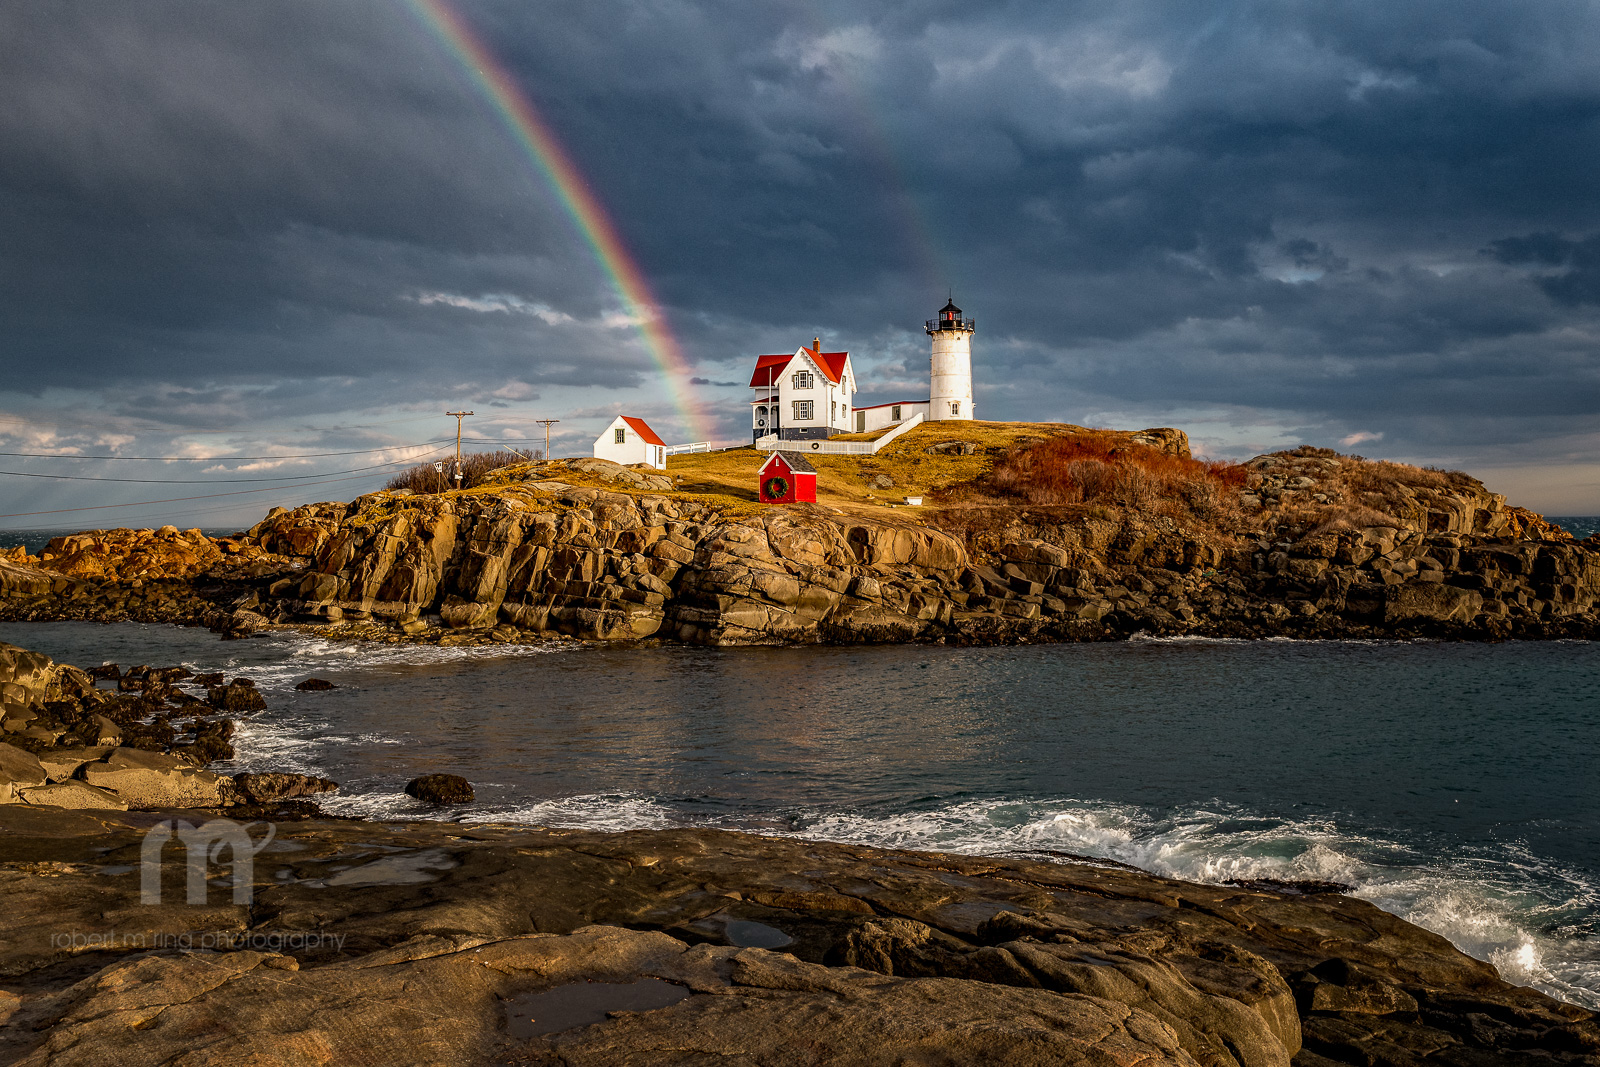 Maine, Nubble Light,Maine coast, New England, Lighthouse, Rainbow,Rainbows